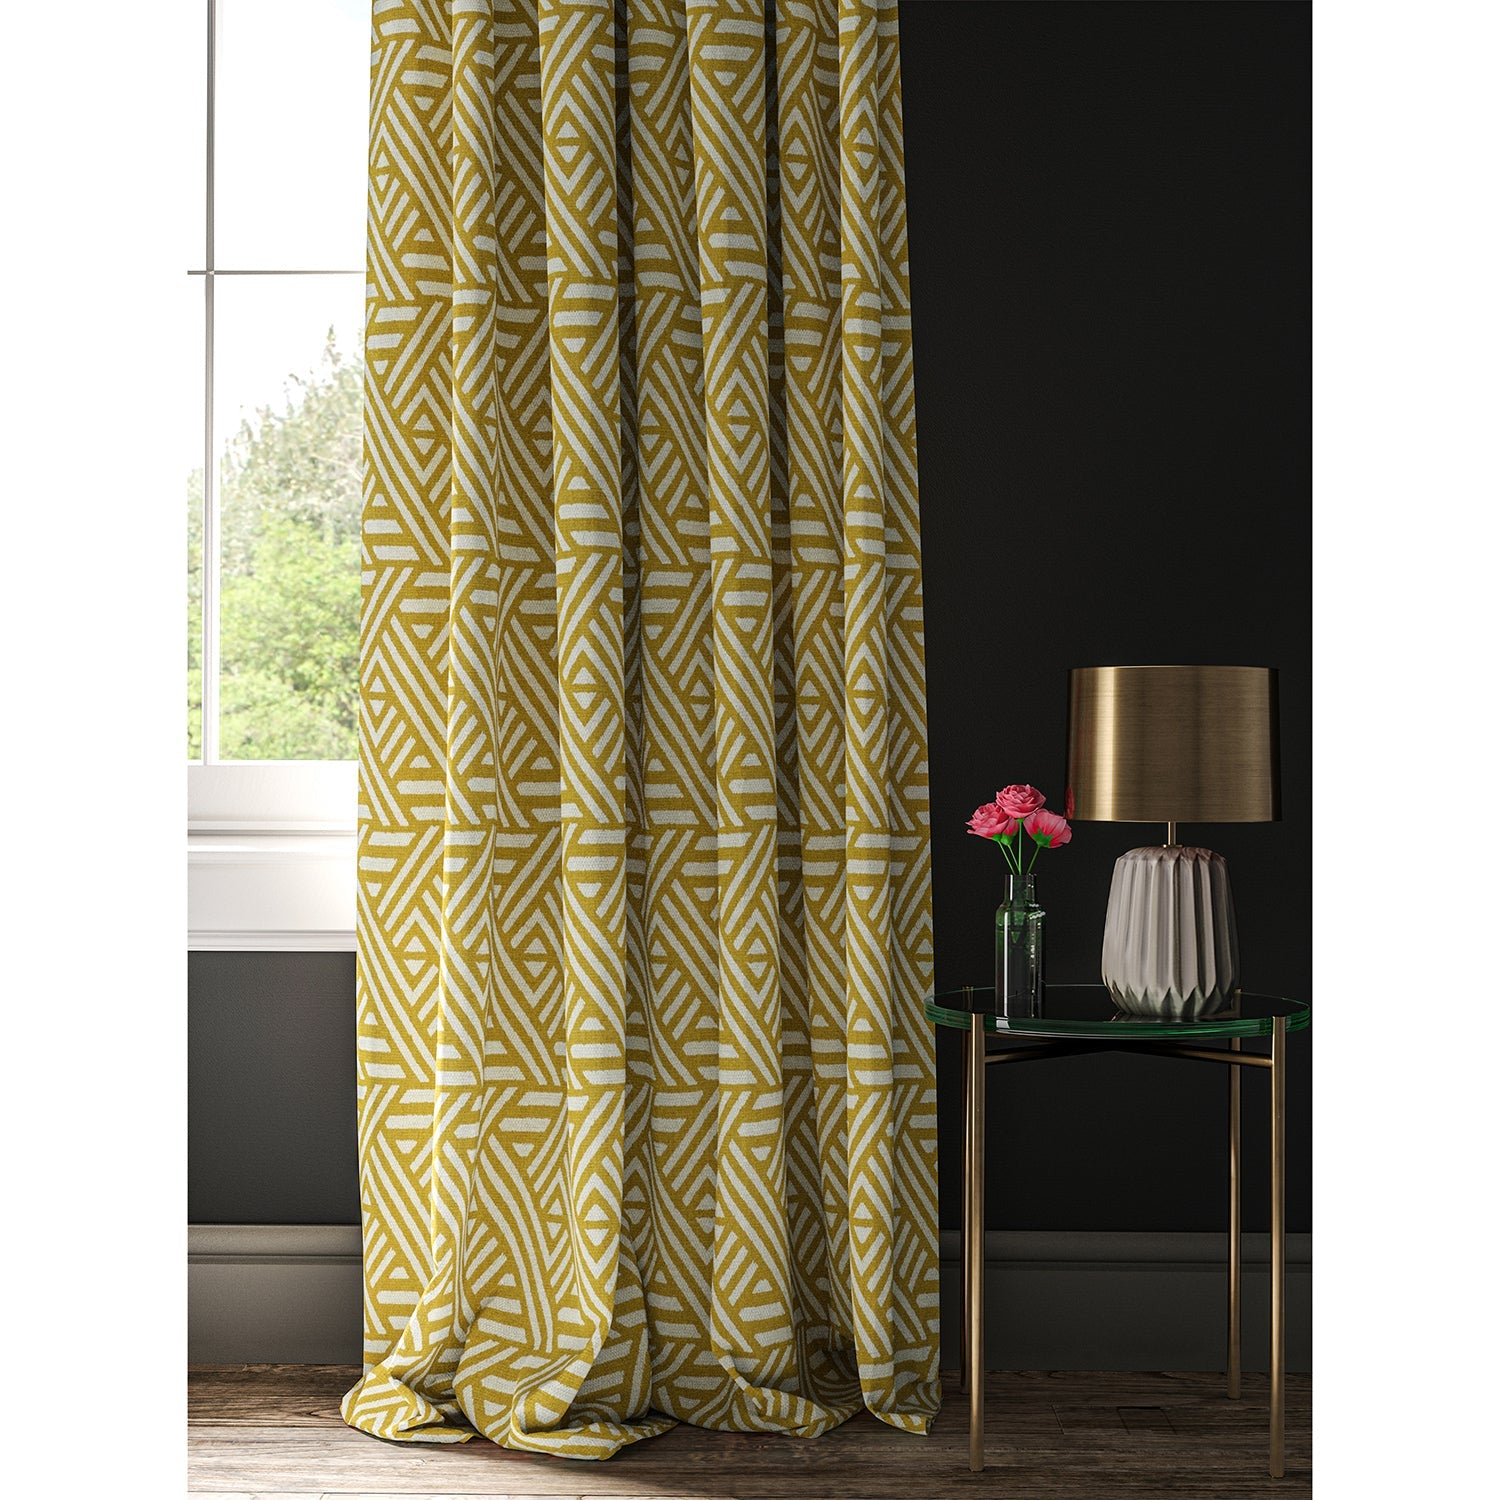 Curtain with a yellow and white geometric print fabric